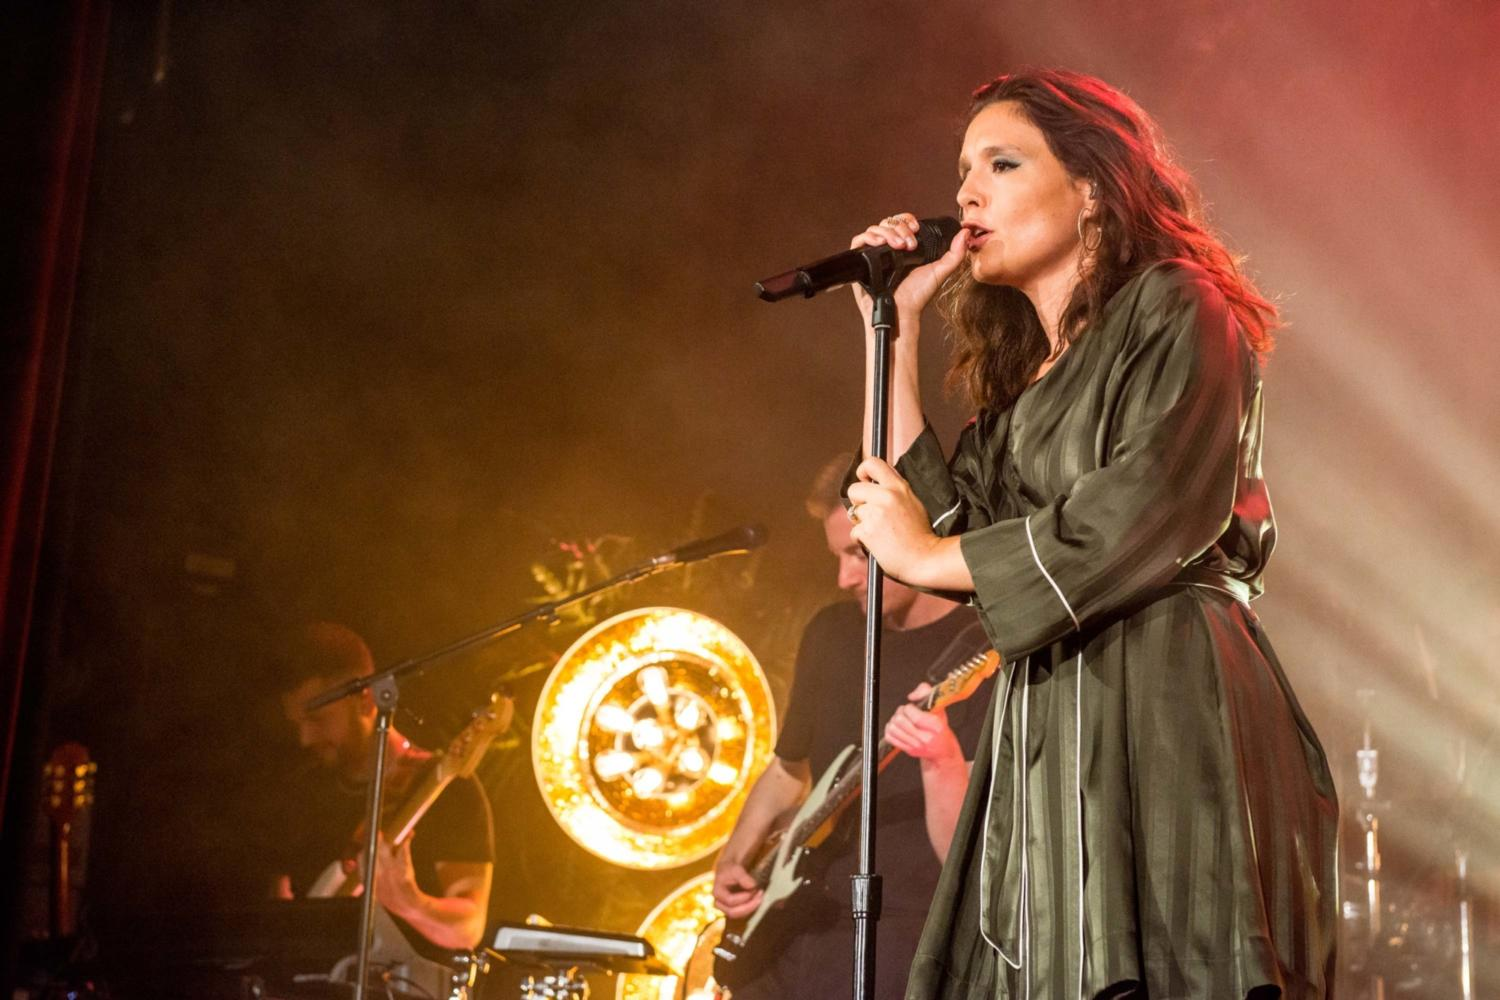 Jessie Ware, SOPHIE and more to play Pohoda Festival 2018